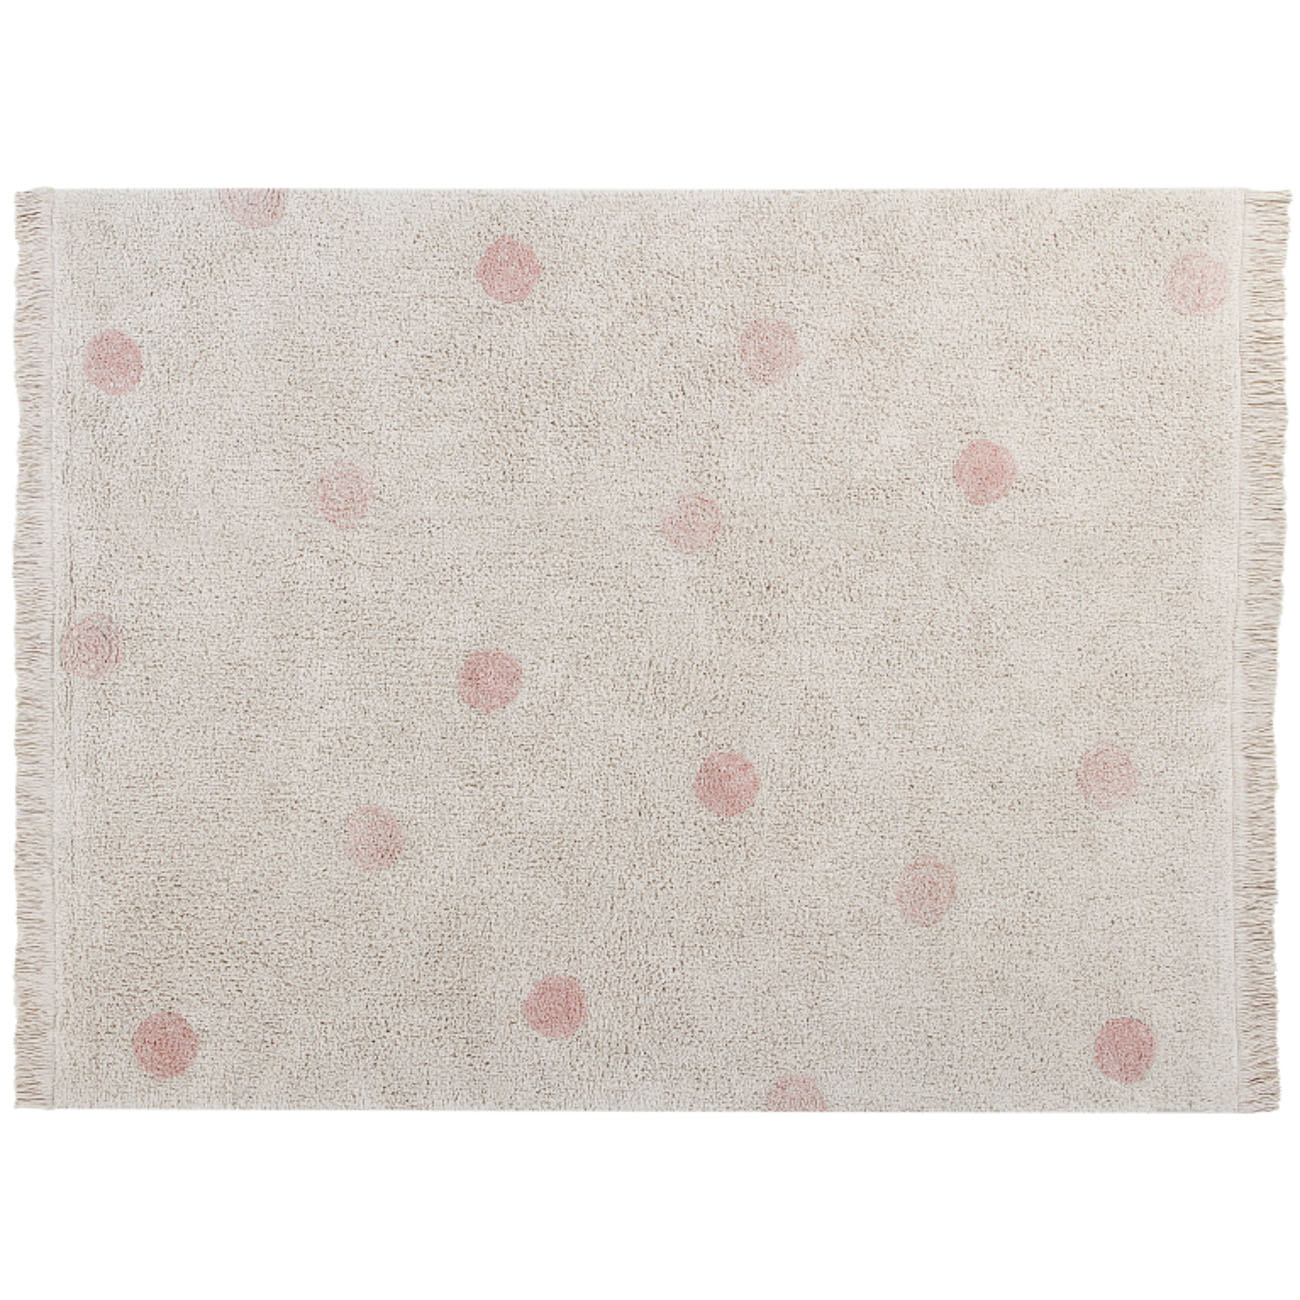 Tapete Lorena Canals Topos Hippy Vintage Nude 120 x 160 cm